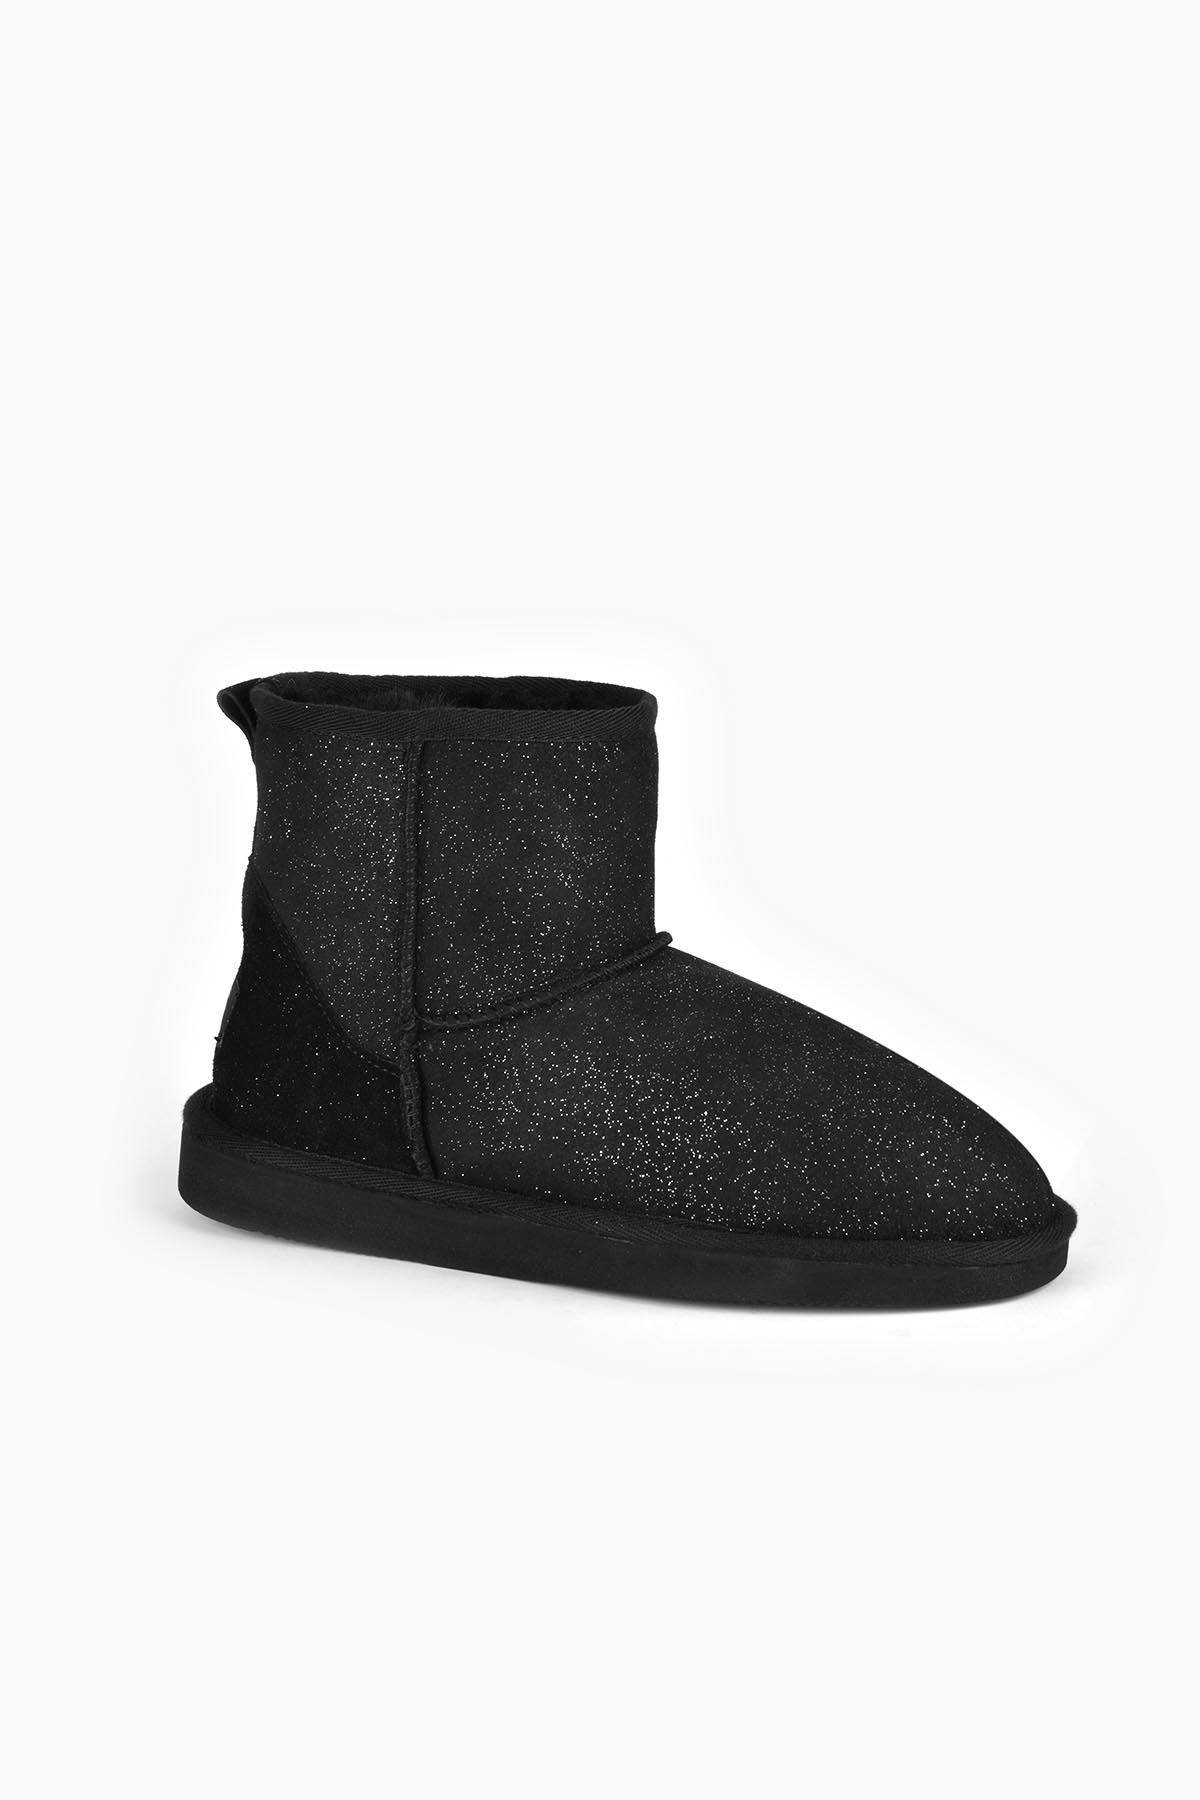 Pegia Short Women Ugg Style Boots From Genuine Sheepskin Fur With Galaxy Sequins Black